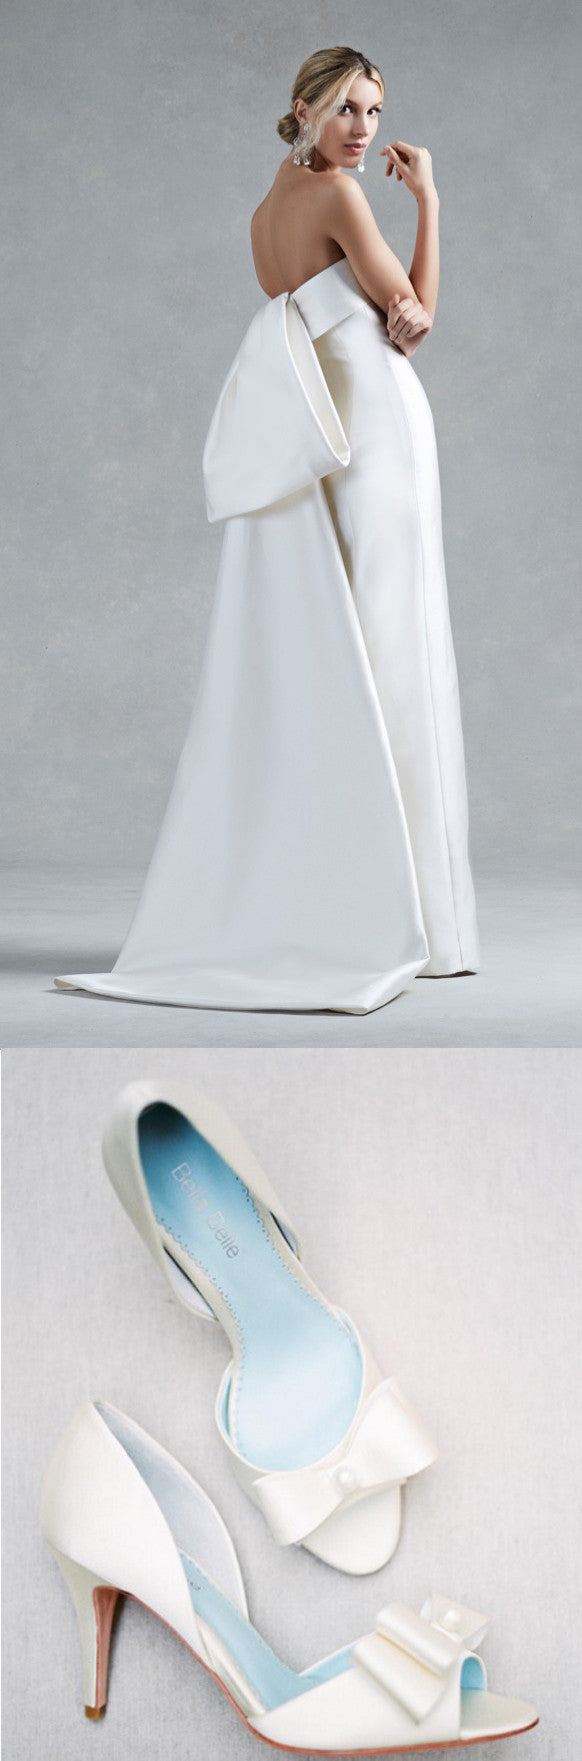 Bella Belle Shoes Julia Something Blue Satin Bow Pearl Sleek Modern Minimalist Elegant and wedding dress Oscar de la Renta